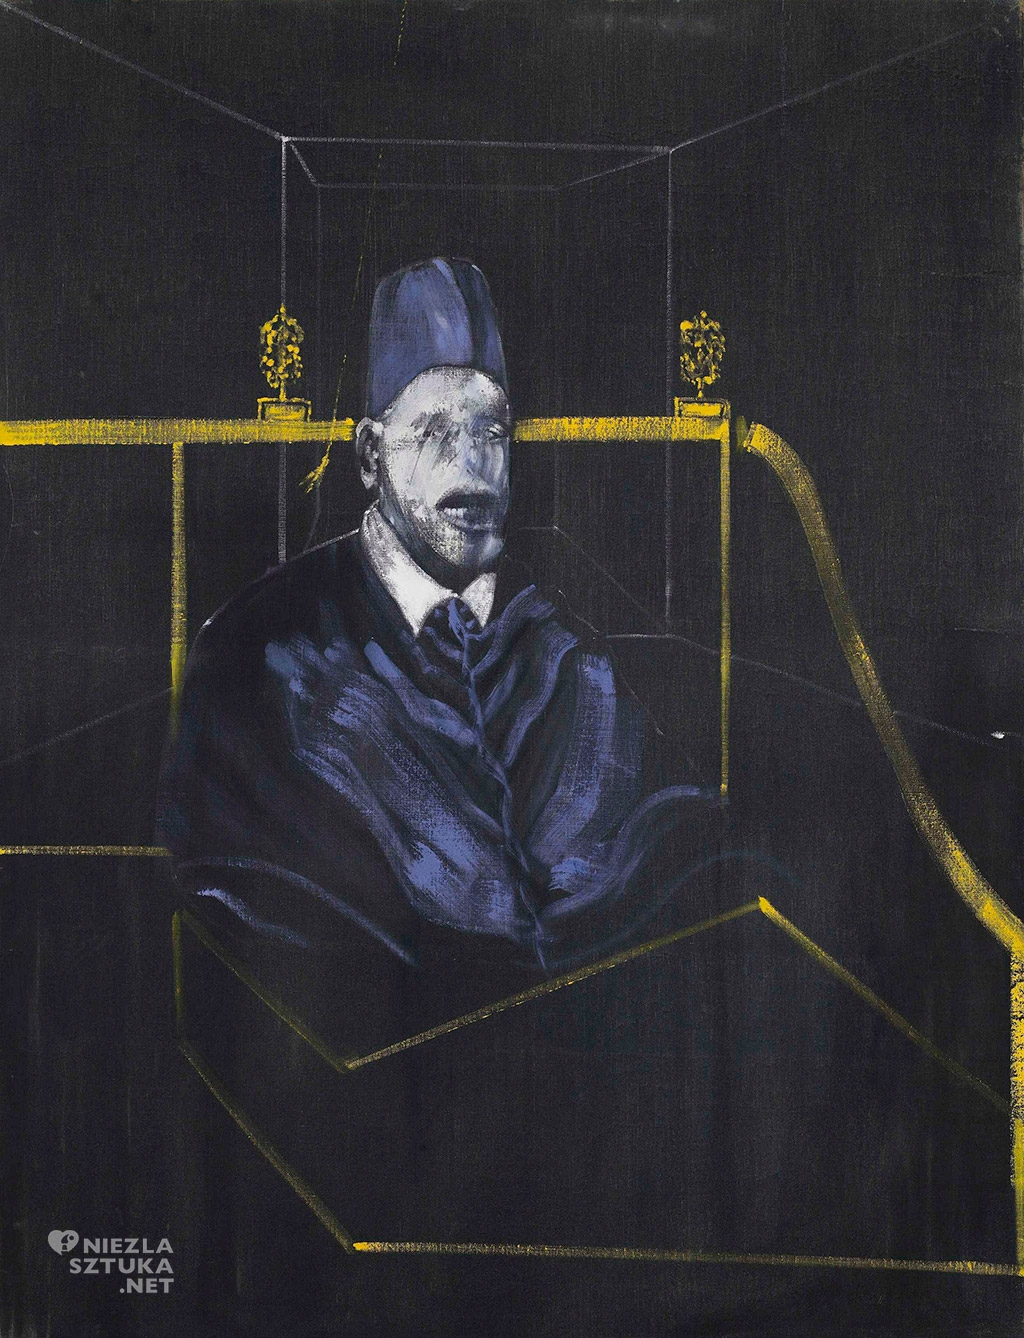 Francis Bacon, Studium do portretu, portret, Minneapolis Institute of Art, niezła sztuka